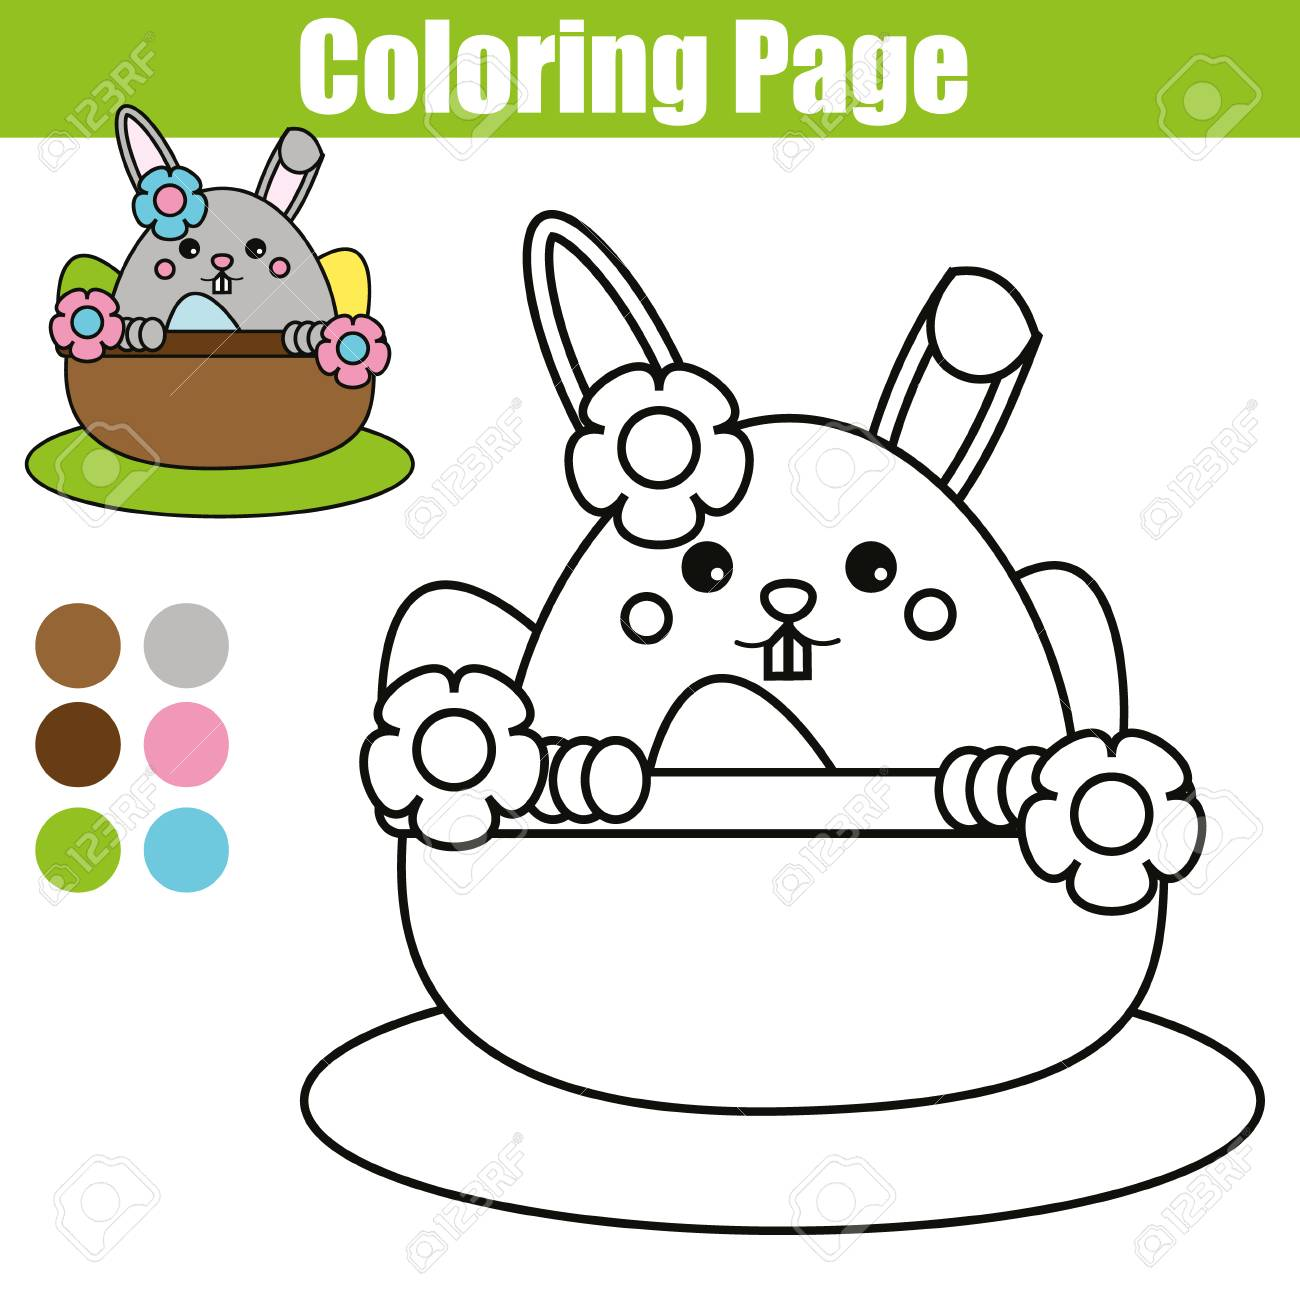 Coloring Page With Easter Bunny Character Printable Worksheet Educational Children Game Drawing Kids